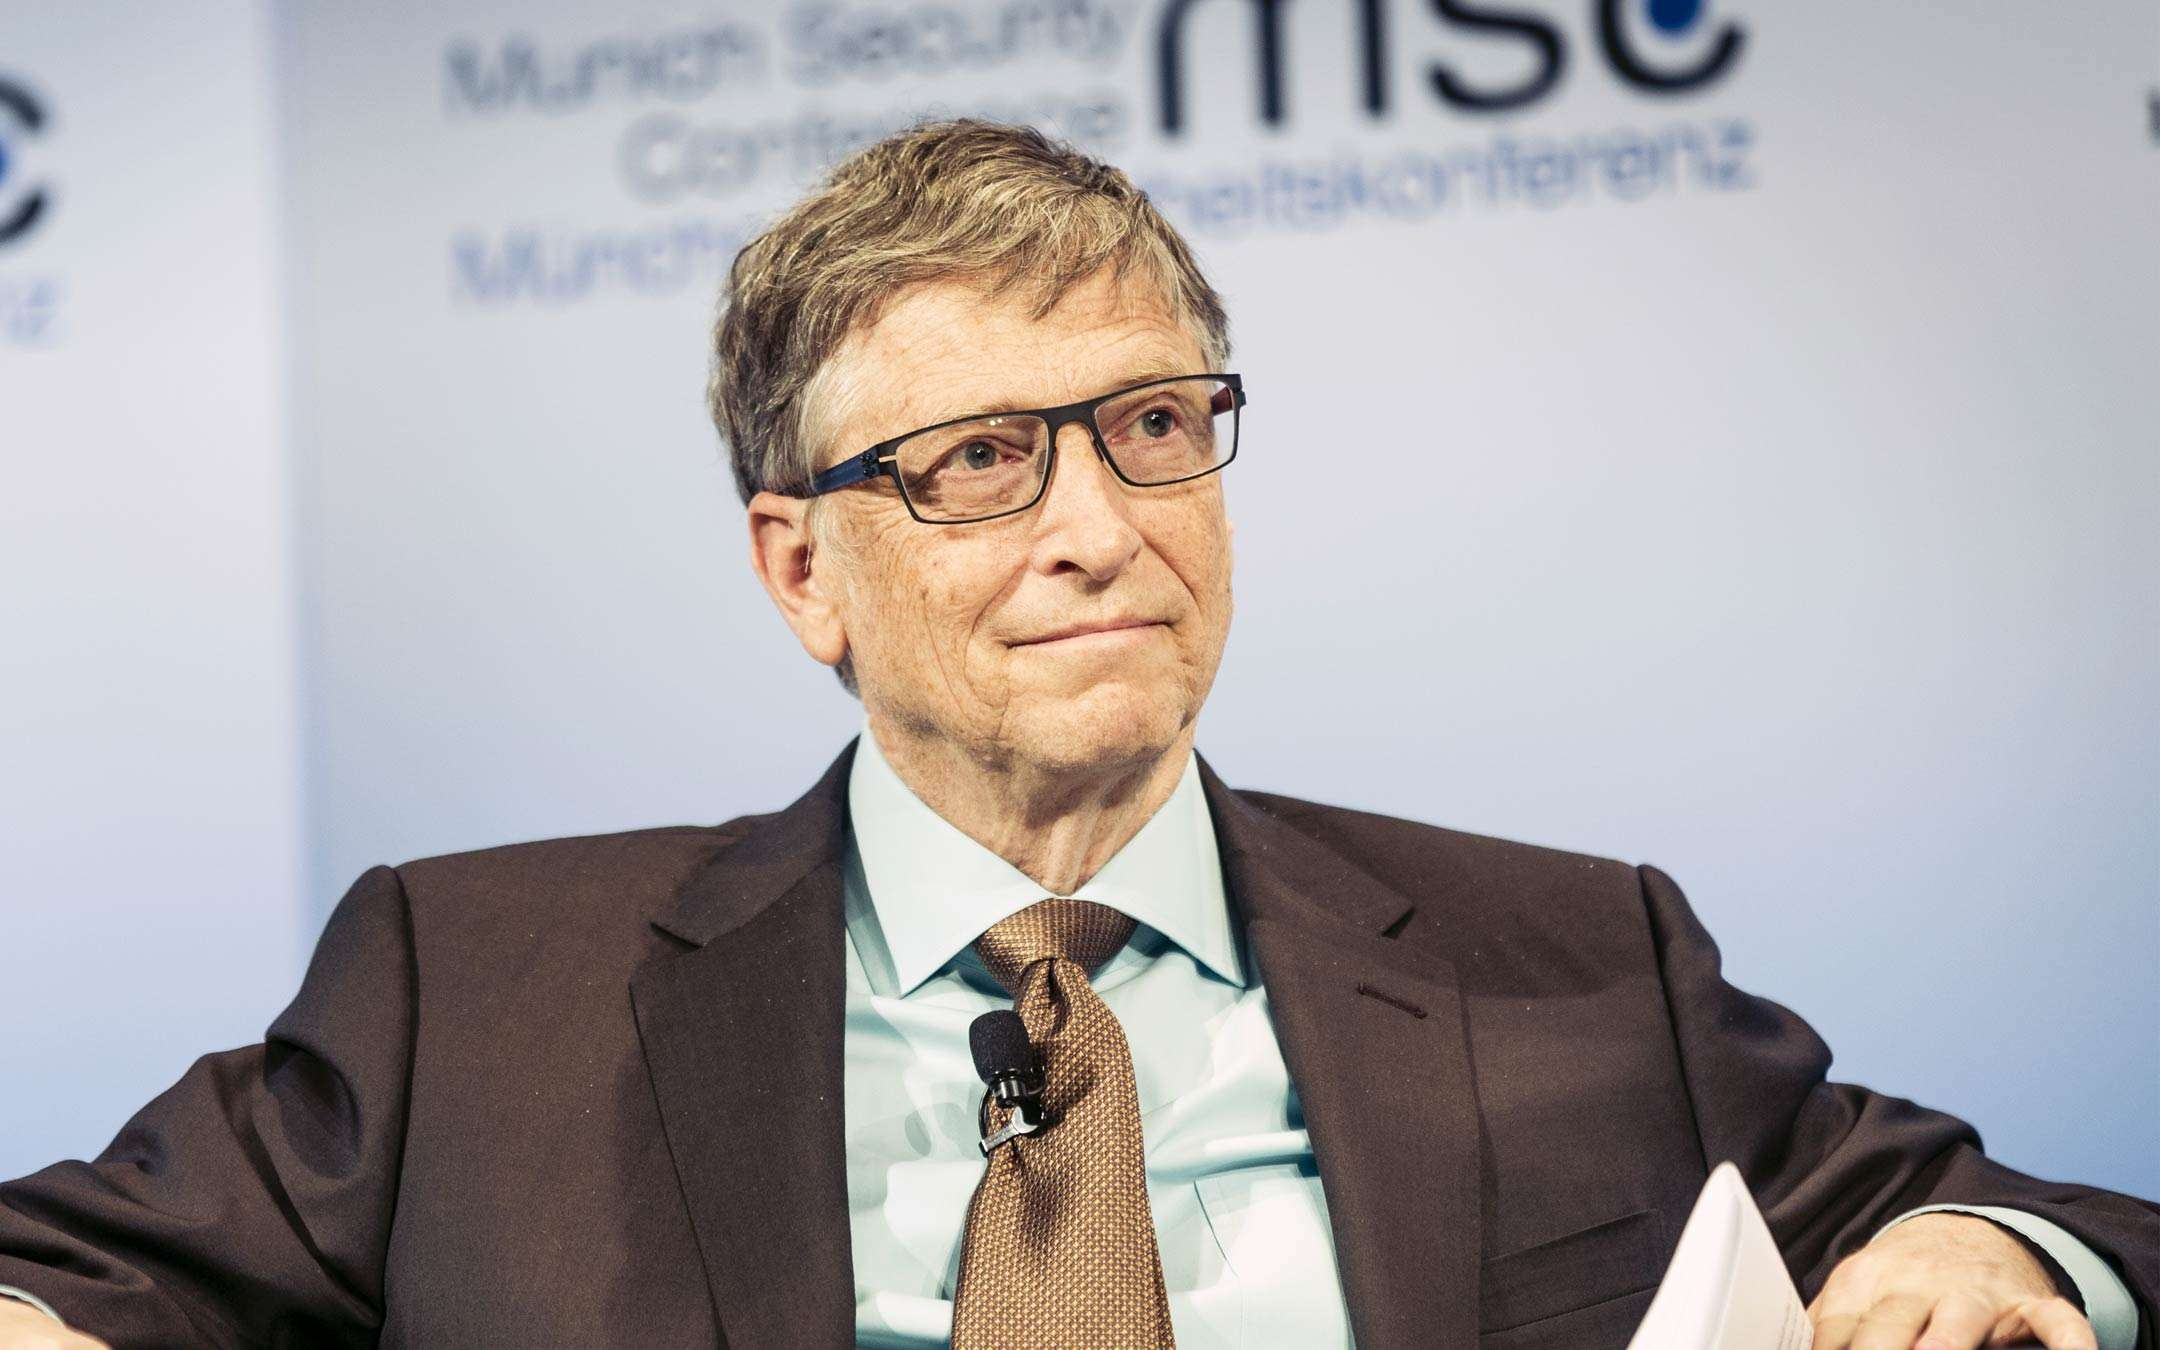 Bill Gates' opinion on Bitcoin and cryptocurrencies